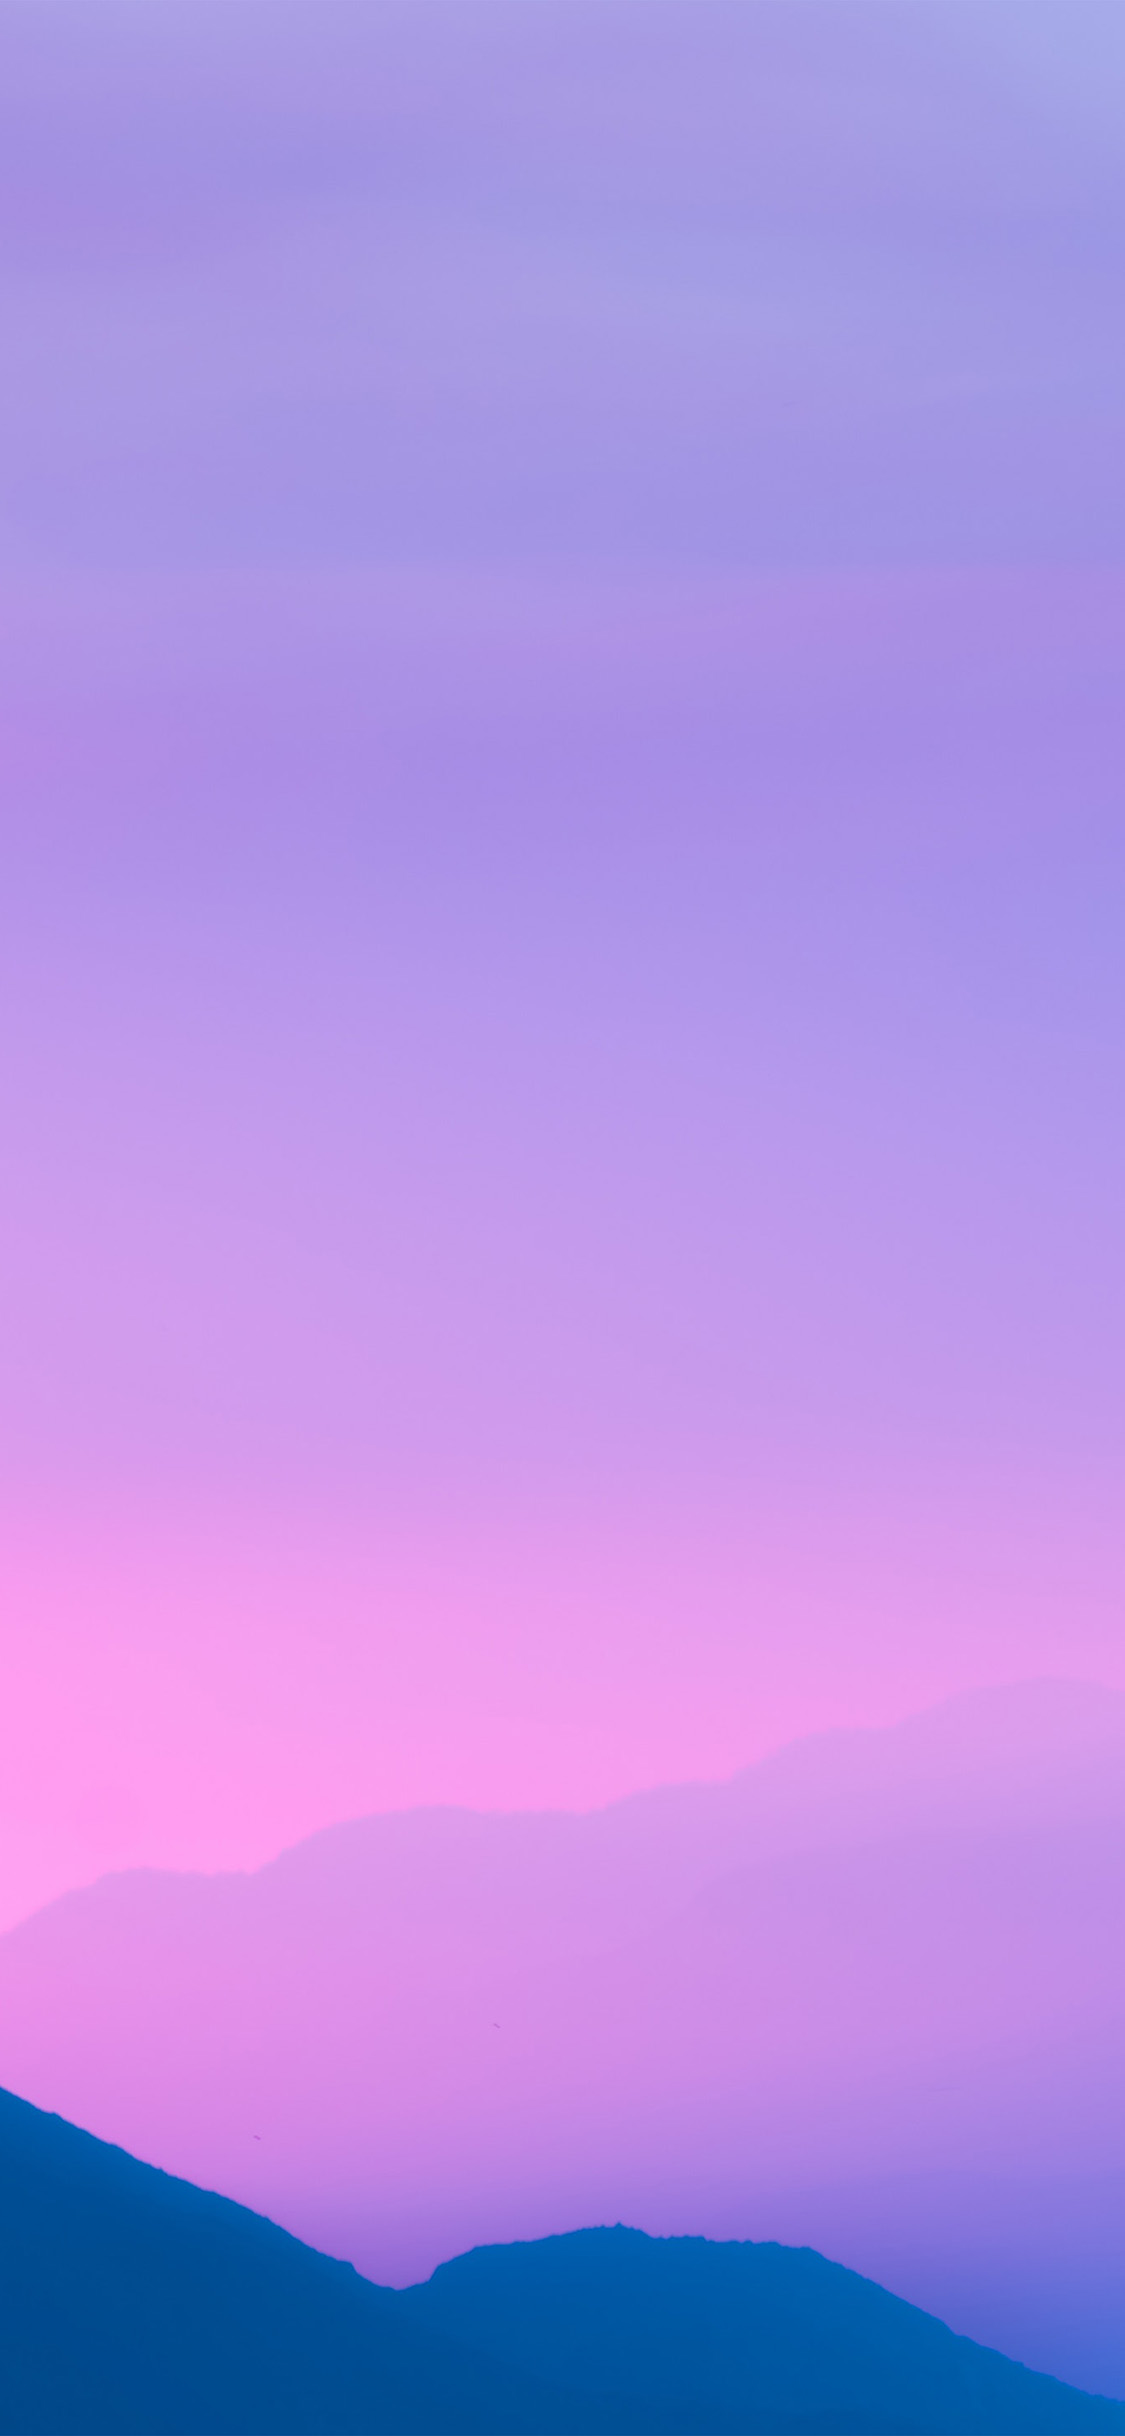 iPhonexpapers.com-Apple-iPhone-wallpaper-nz11-sky-purple-sunset-nature-blur